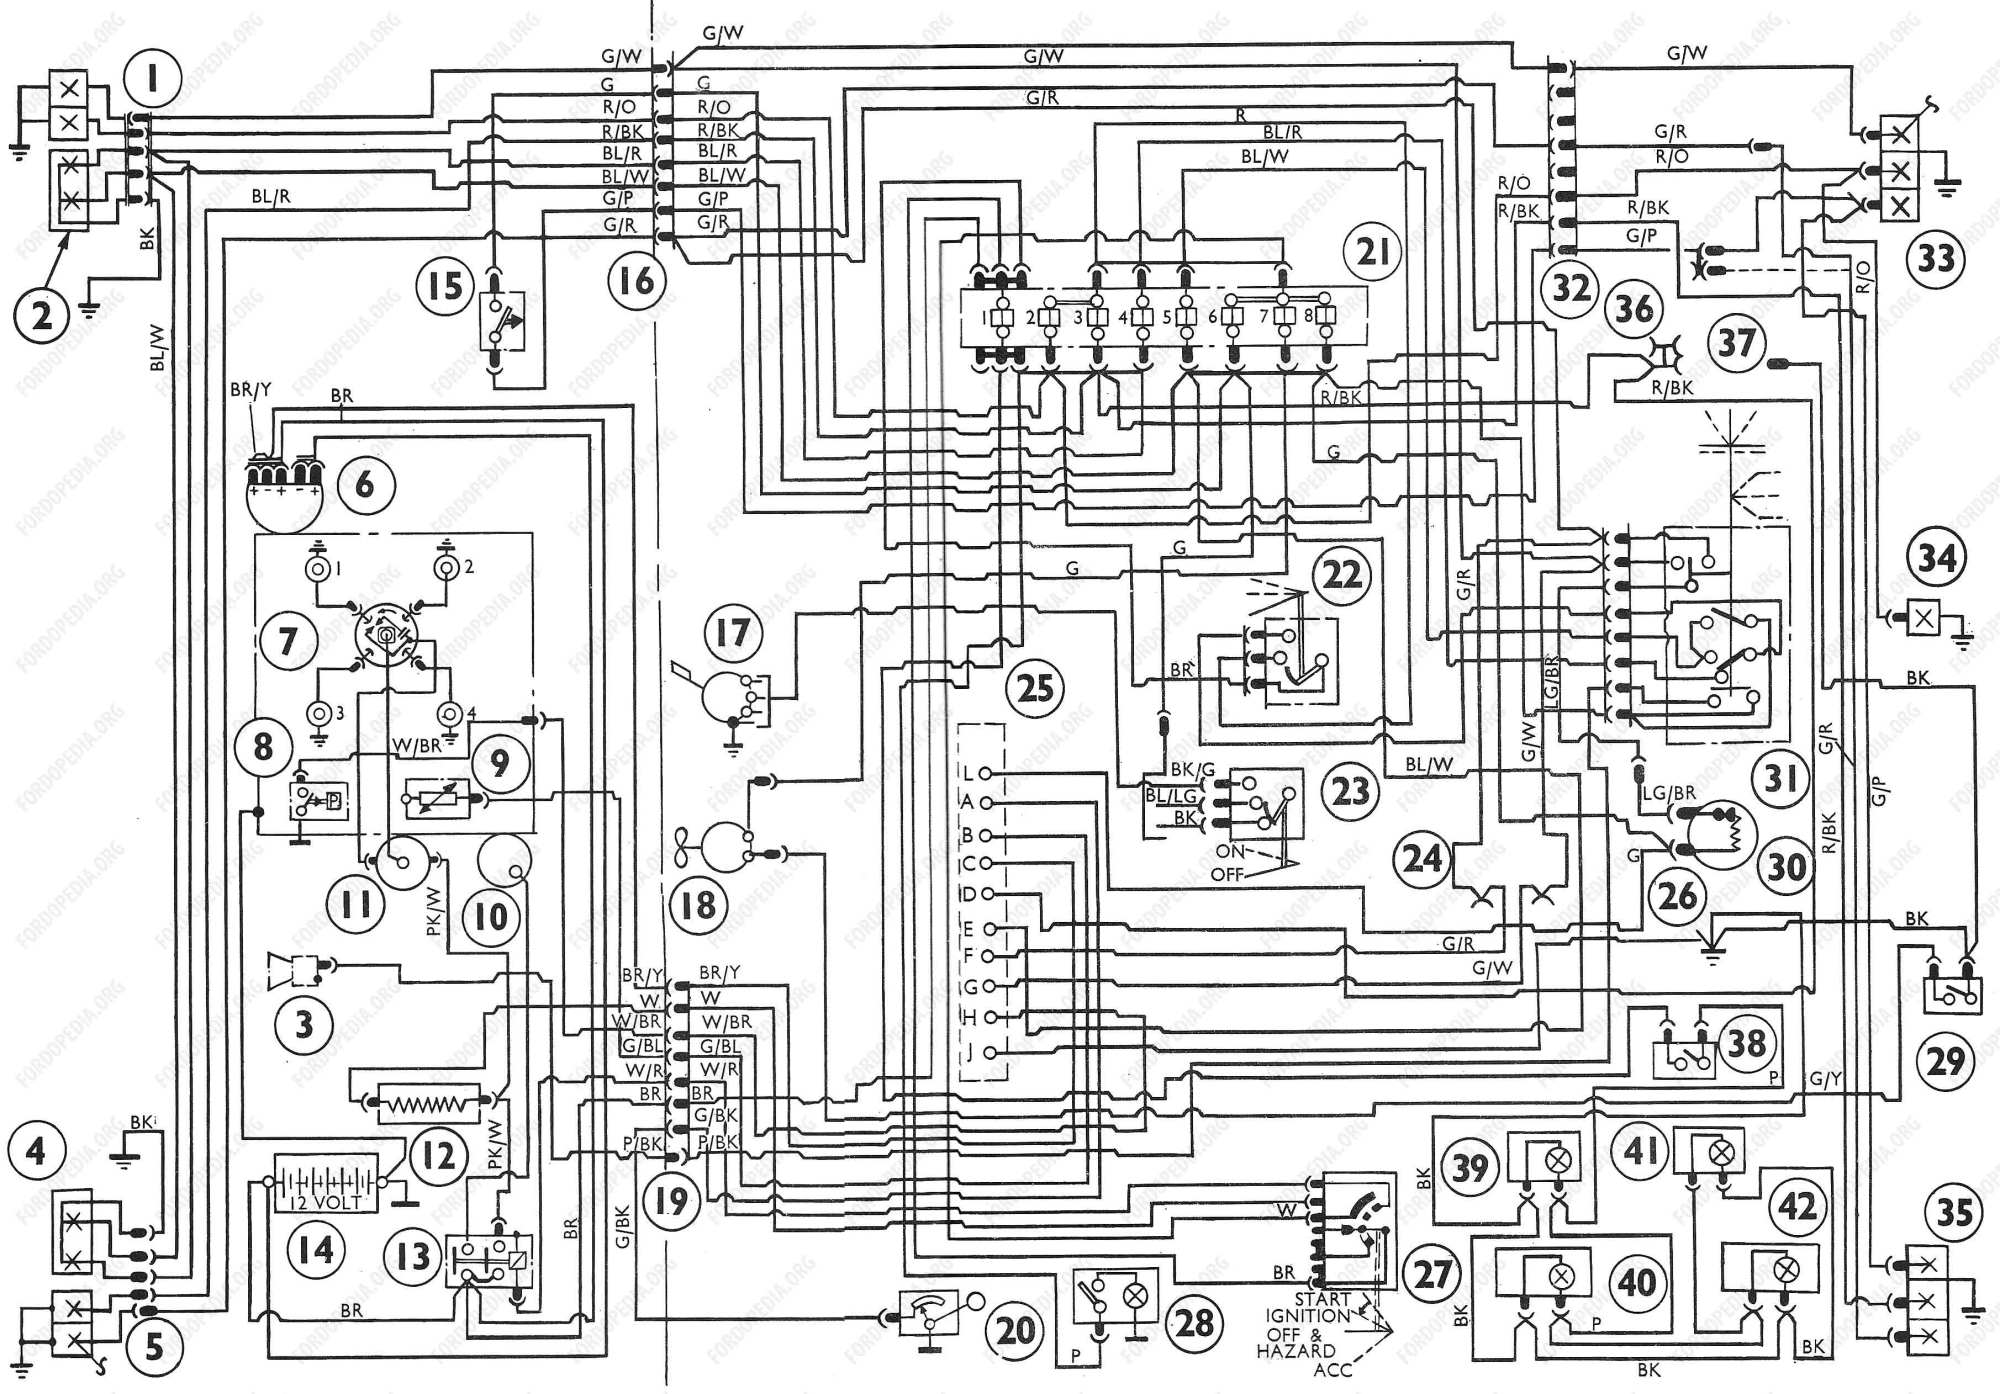 hight resolution of download full size image 3621x2525 642 kb wiring diagrams ford transit mki f o b 09 1968 to 09 1970 wiring